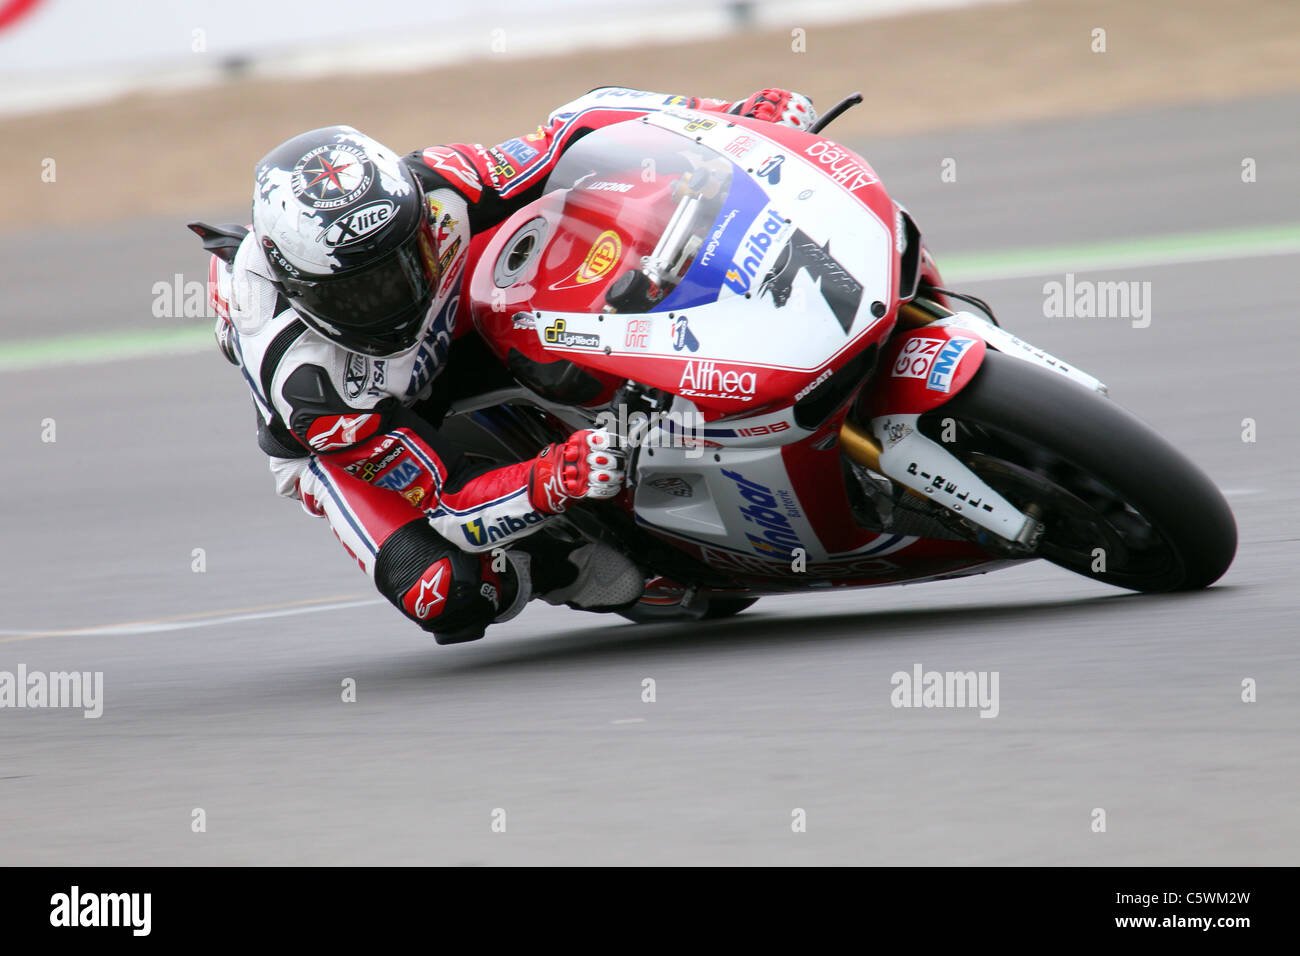 Race winner Carlos Checa exits Club during WSB race at Silverstone Stock Photo